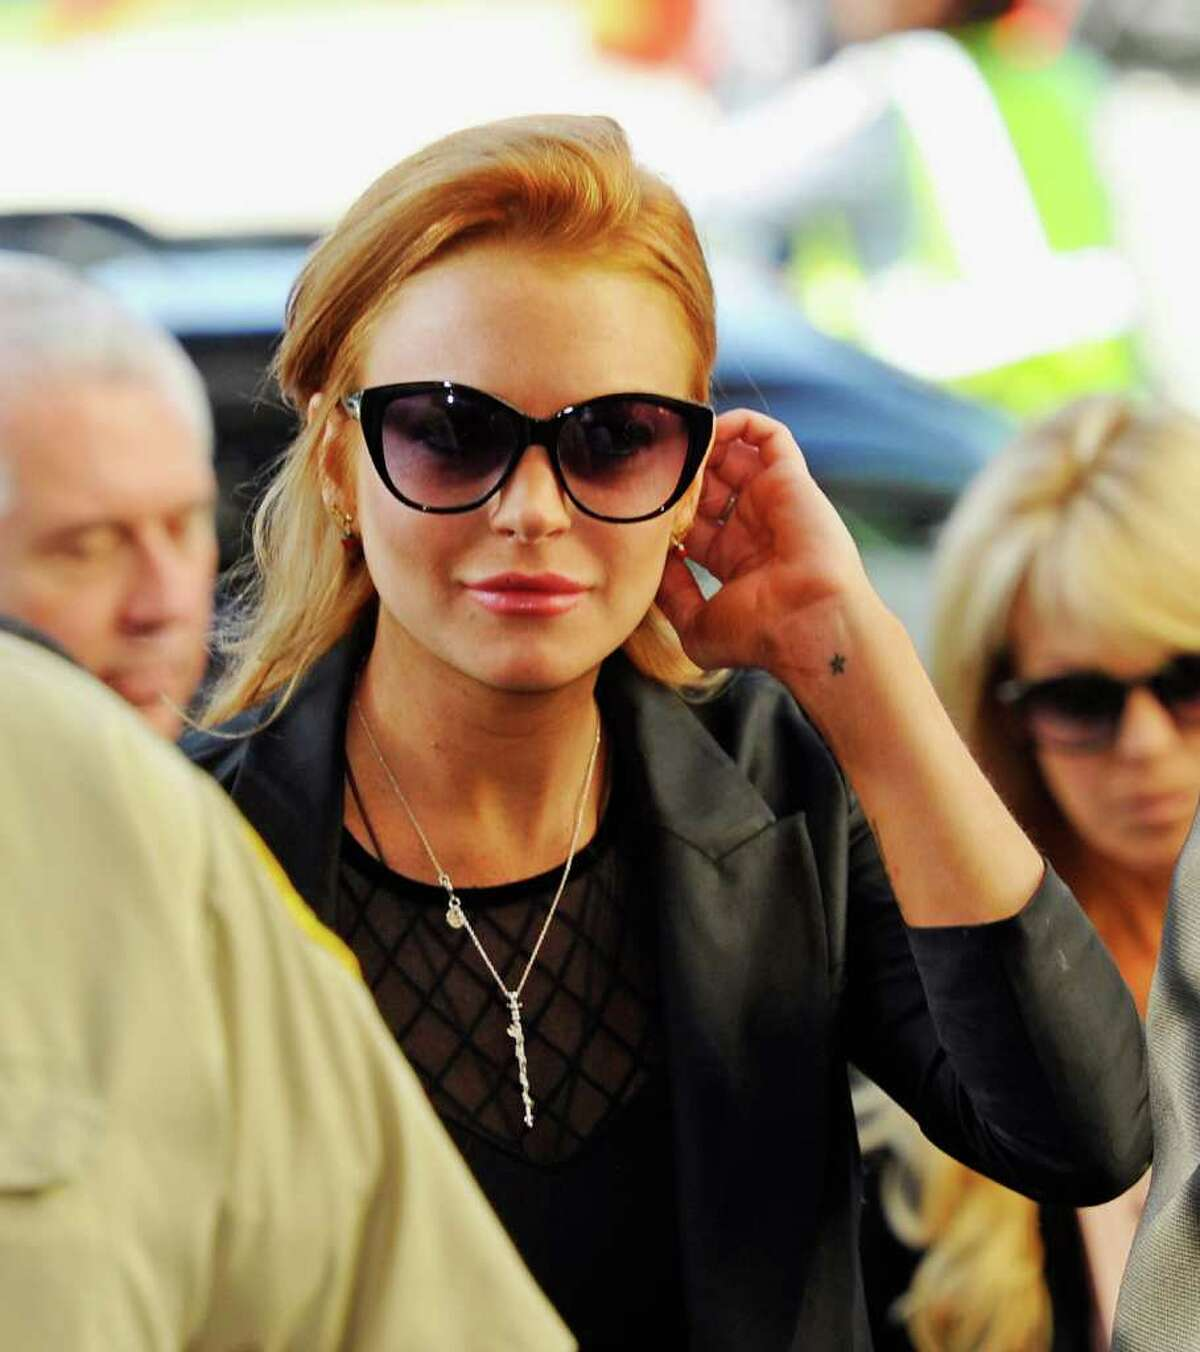 BEVERLY HILLS, CA - SEPTEMBER 24: Actress Lindsay Lohan escorted by Los Angeles County Sheriff Deputies arrives for a mandatory court appearance before a judge who revoked her probation earlier this week at Beverly Hills Courthouse on September 24, 2010 in Beverly Hills, California. Superior Court Judge Elden S. Fox issued a bench warrant for the actress who as on is probation for a pair of driving under the influence cases. (Photo by Kevork Djansezian/Getty Images) *** Local Caption *** Lindsay Lohan